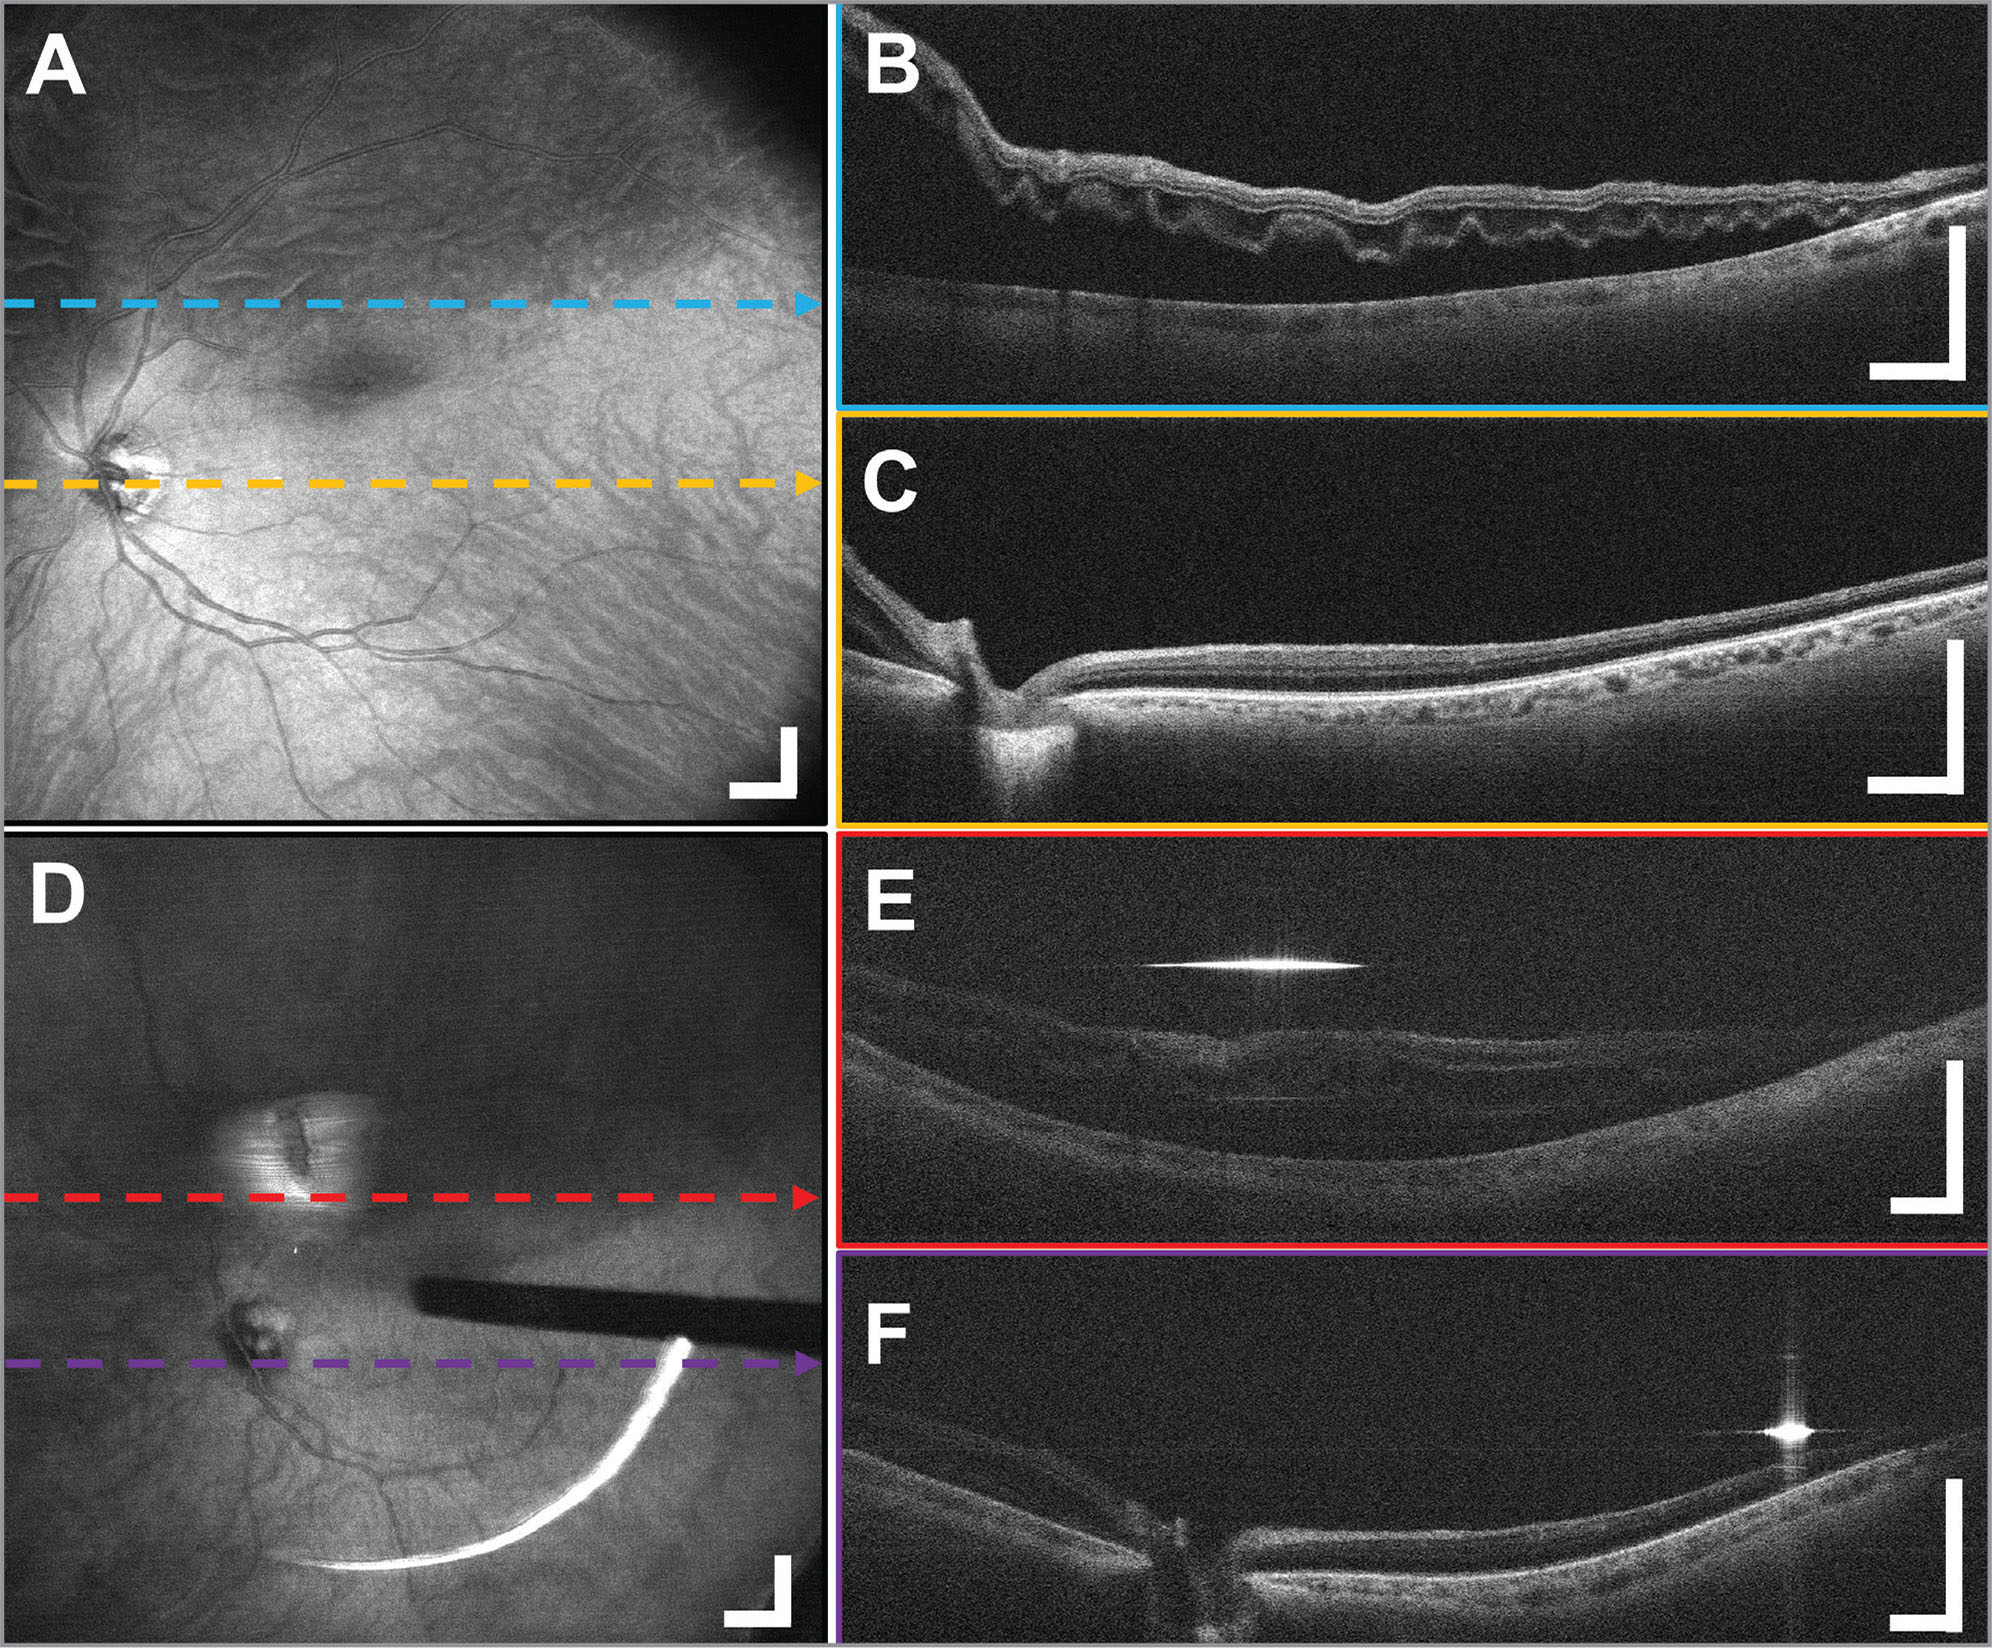 Widefield optical coherence tomography (OCT) before and after rhegmatogenous retinal detachment repair in a 60-year-old male subject imaged through the custom anti-reflection-coated 80 diopter non-contact fundus lens. The subretinal fluid volume before and after air-fluid exchange can be visualized. A 12 × 12 mm2 (A) en face OCT projection shows the rippled appearance of detachment and reduced OCT signal before air-fluid exchange. (B, C) Representative B-scans show how the long imaging range captured the subretinal fluid extending to the macular region. A 15 × 15 mm2 (D) widefield en face OCT projection after air-fluid exchange showing the vitrectomy probe shadow. With the same scan parameters, the field of view increased due to the replacement of vitreous by air. (E, F) Representative B-scans have reduced signal due to reflective losses at air-fluid interfaces. The B-scans show residual subretinal fluid in the superior retina and a flattening of the retinal contour. Strong reflections from the air-fluid interfaces caused bright bands. Cross-sections are averages of five adjacent B-scans. Scale bars are 1 mm.